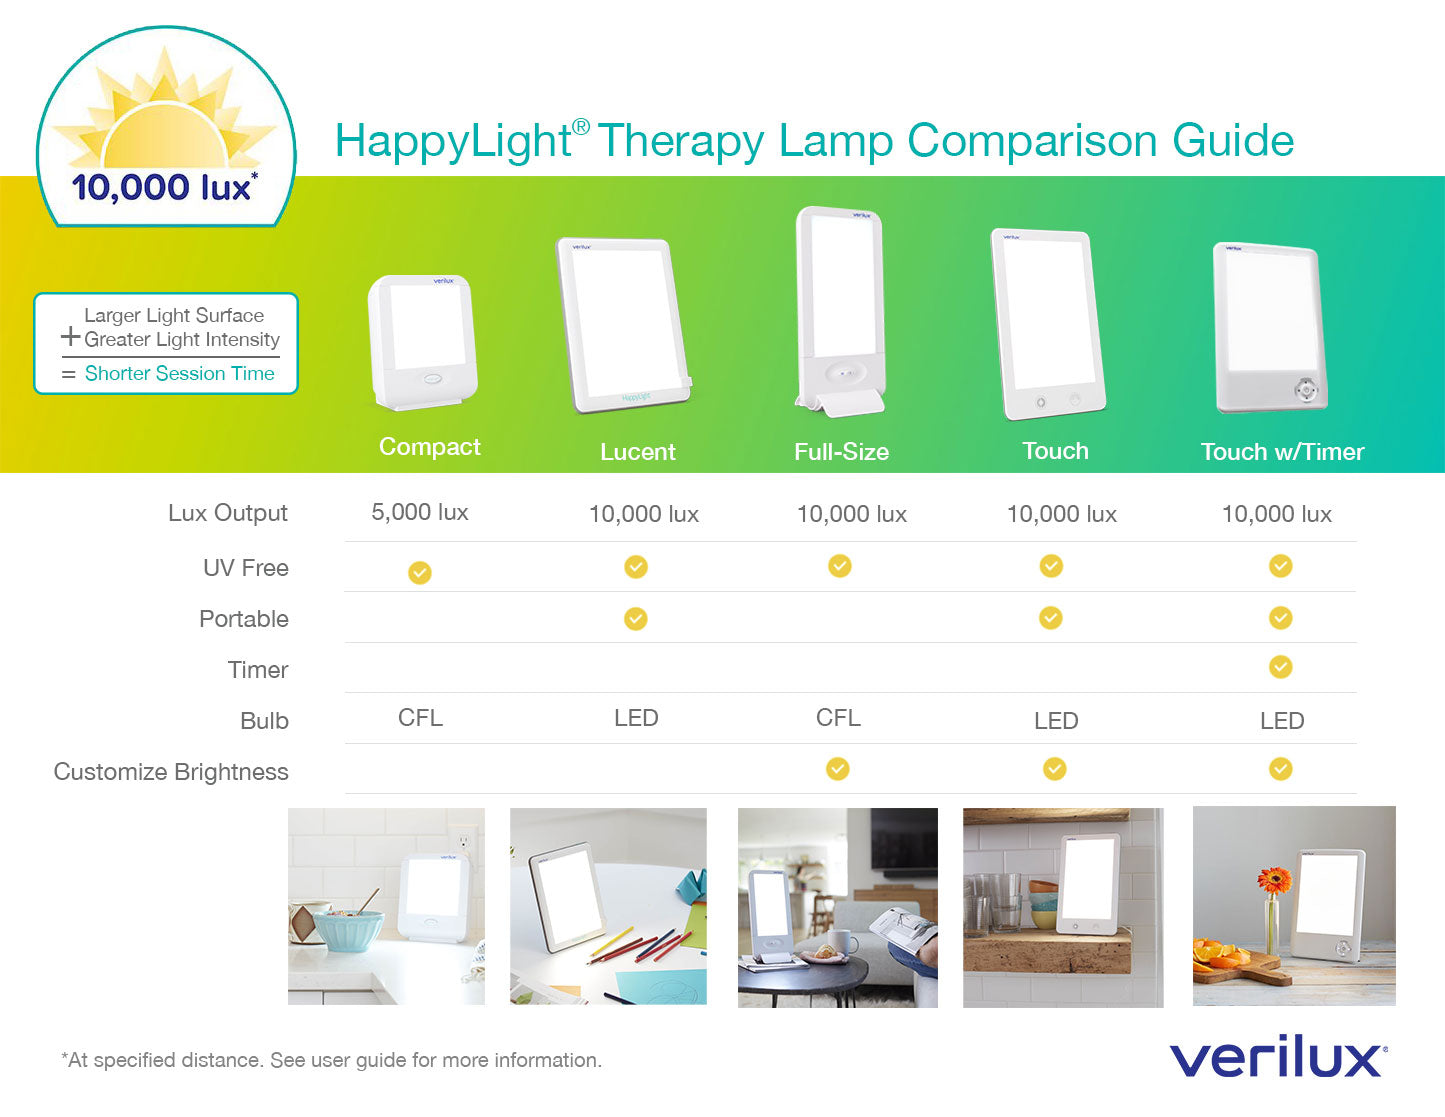 Verilux HappyLight light therapy lamp product comparison guide